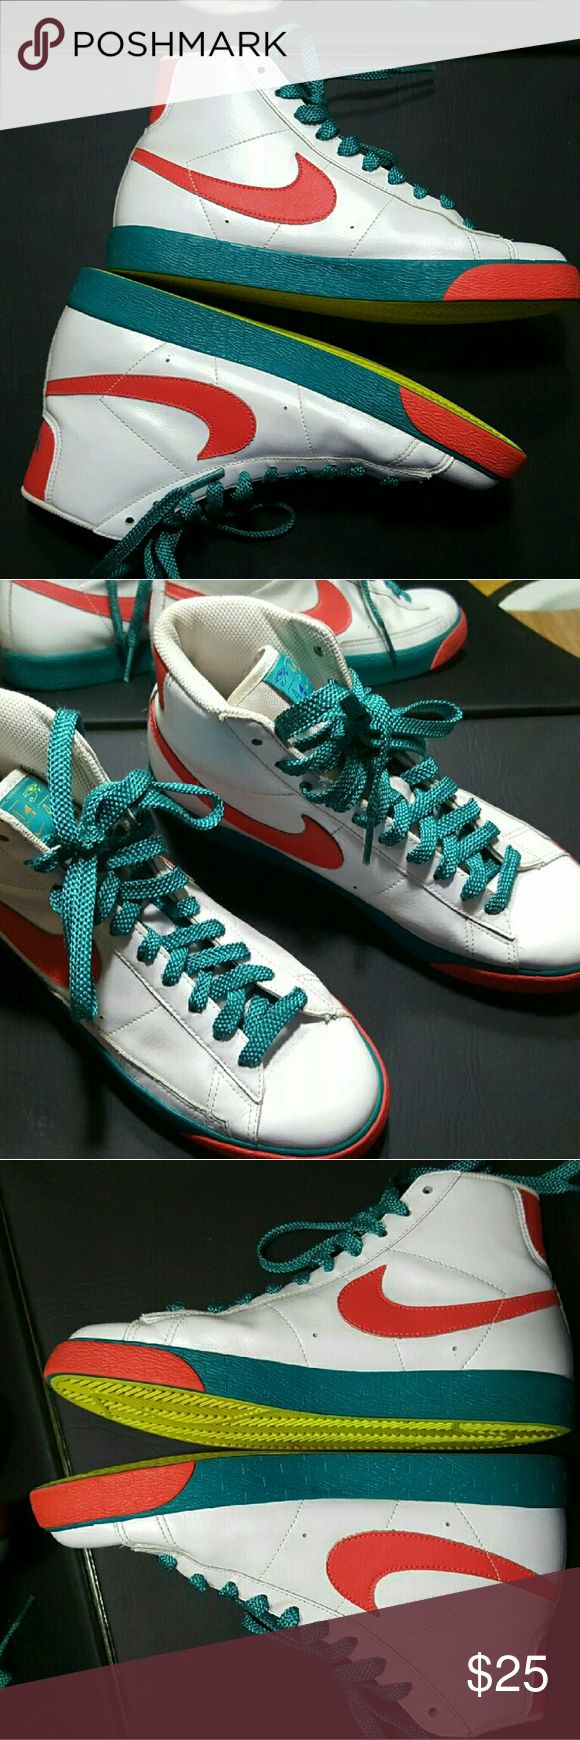 Rare vintage Nike hi tops In great pre owned condition Nike Shoes Sneakers